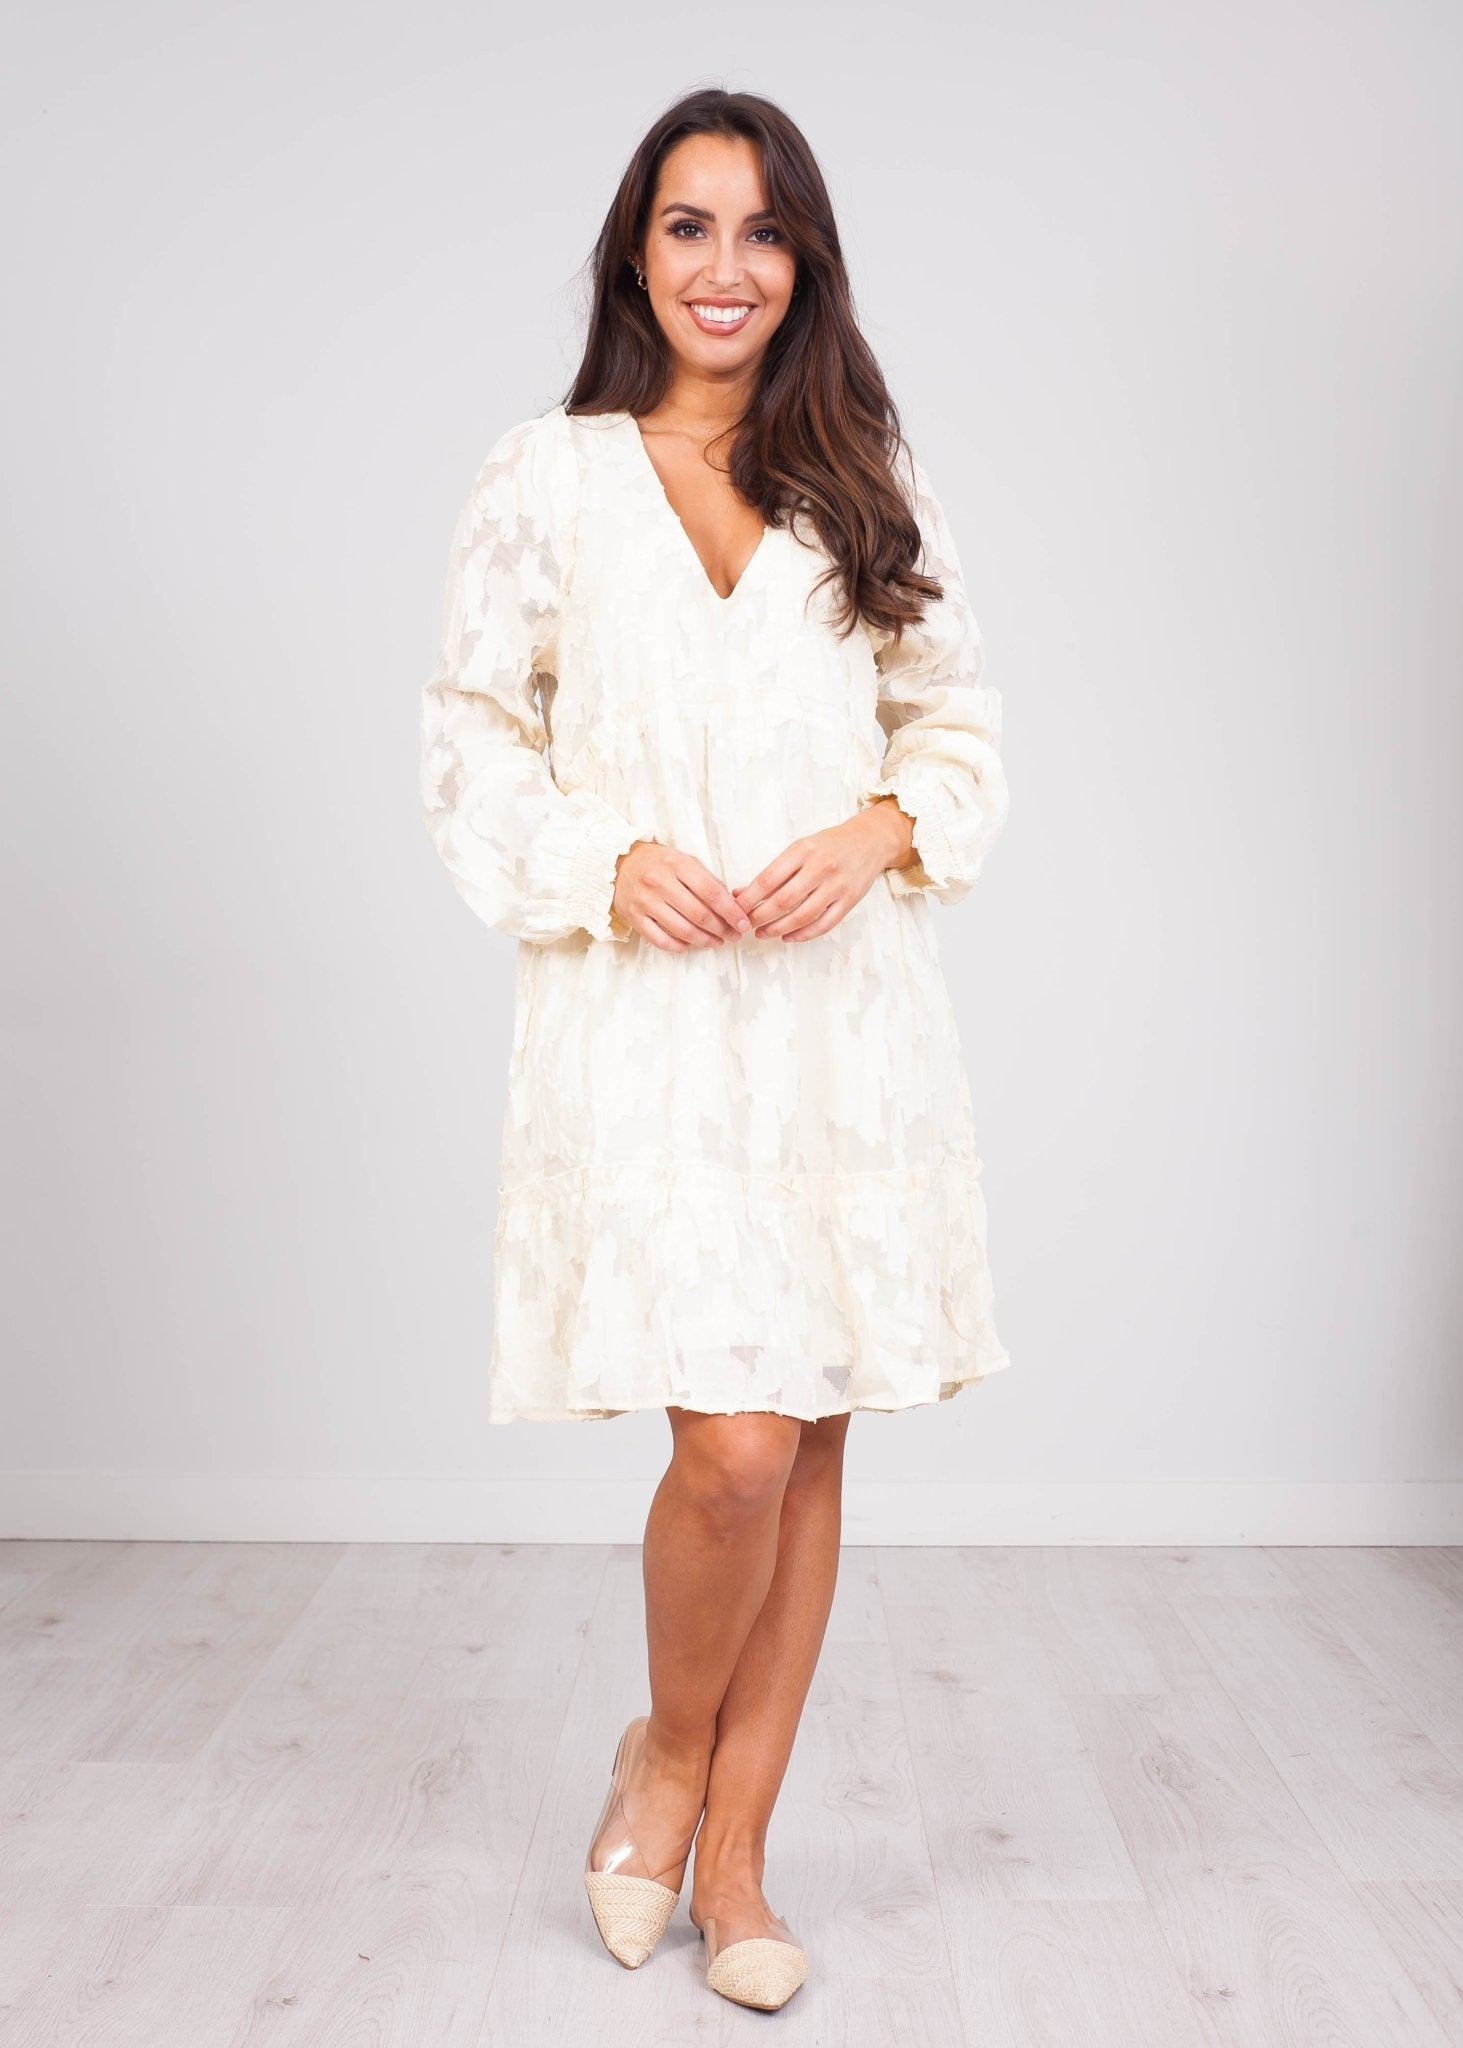 Cherie Cream Lace Dress - The Walk in Wardrobe